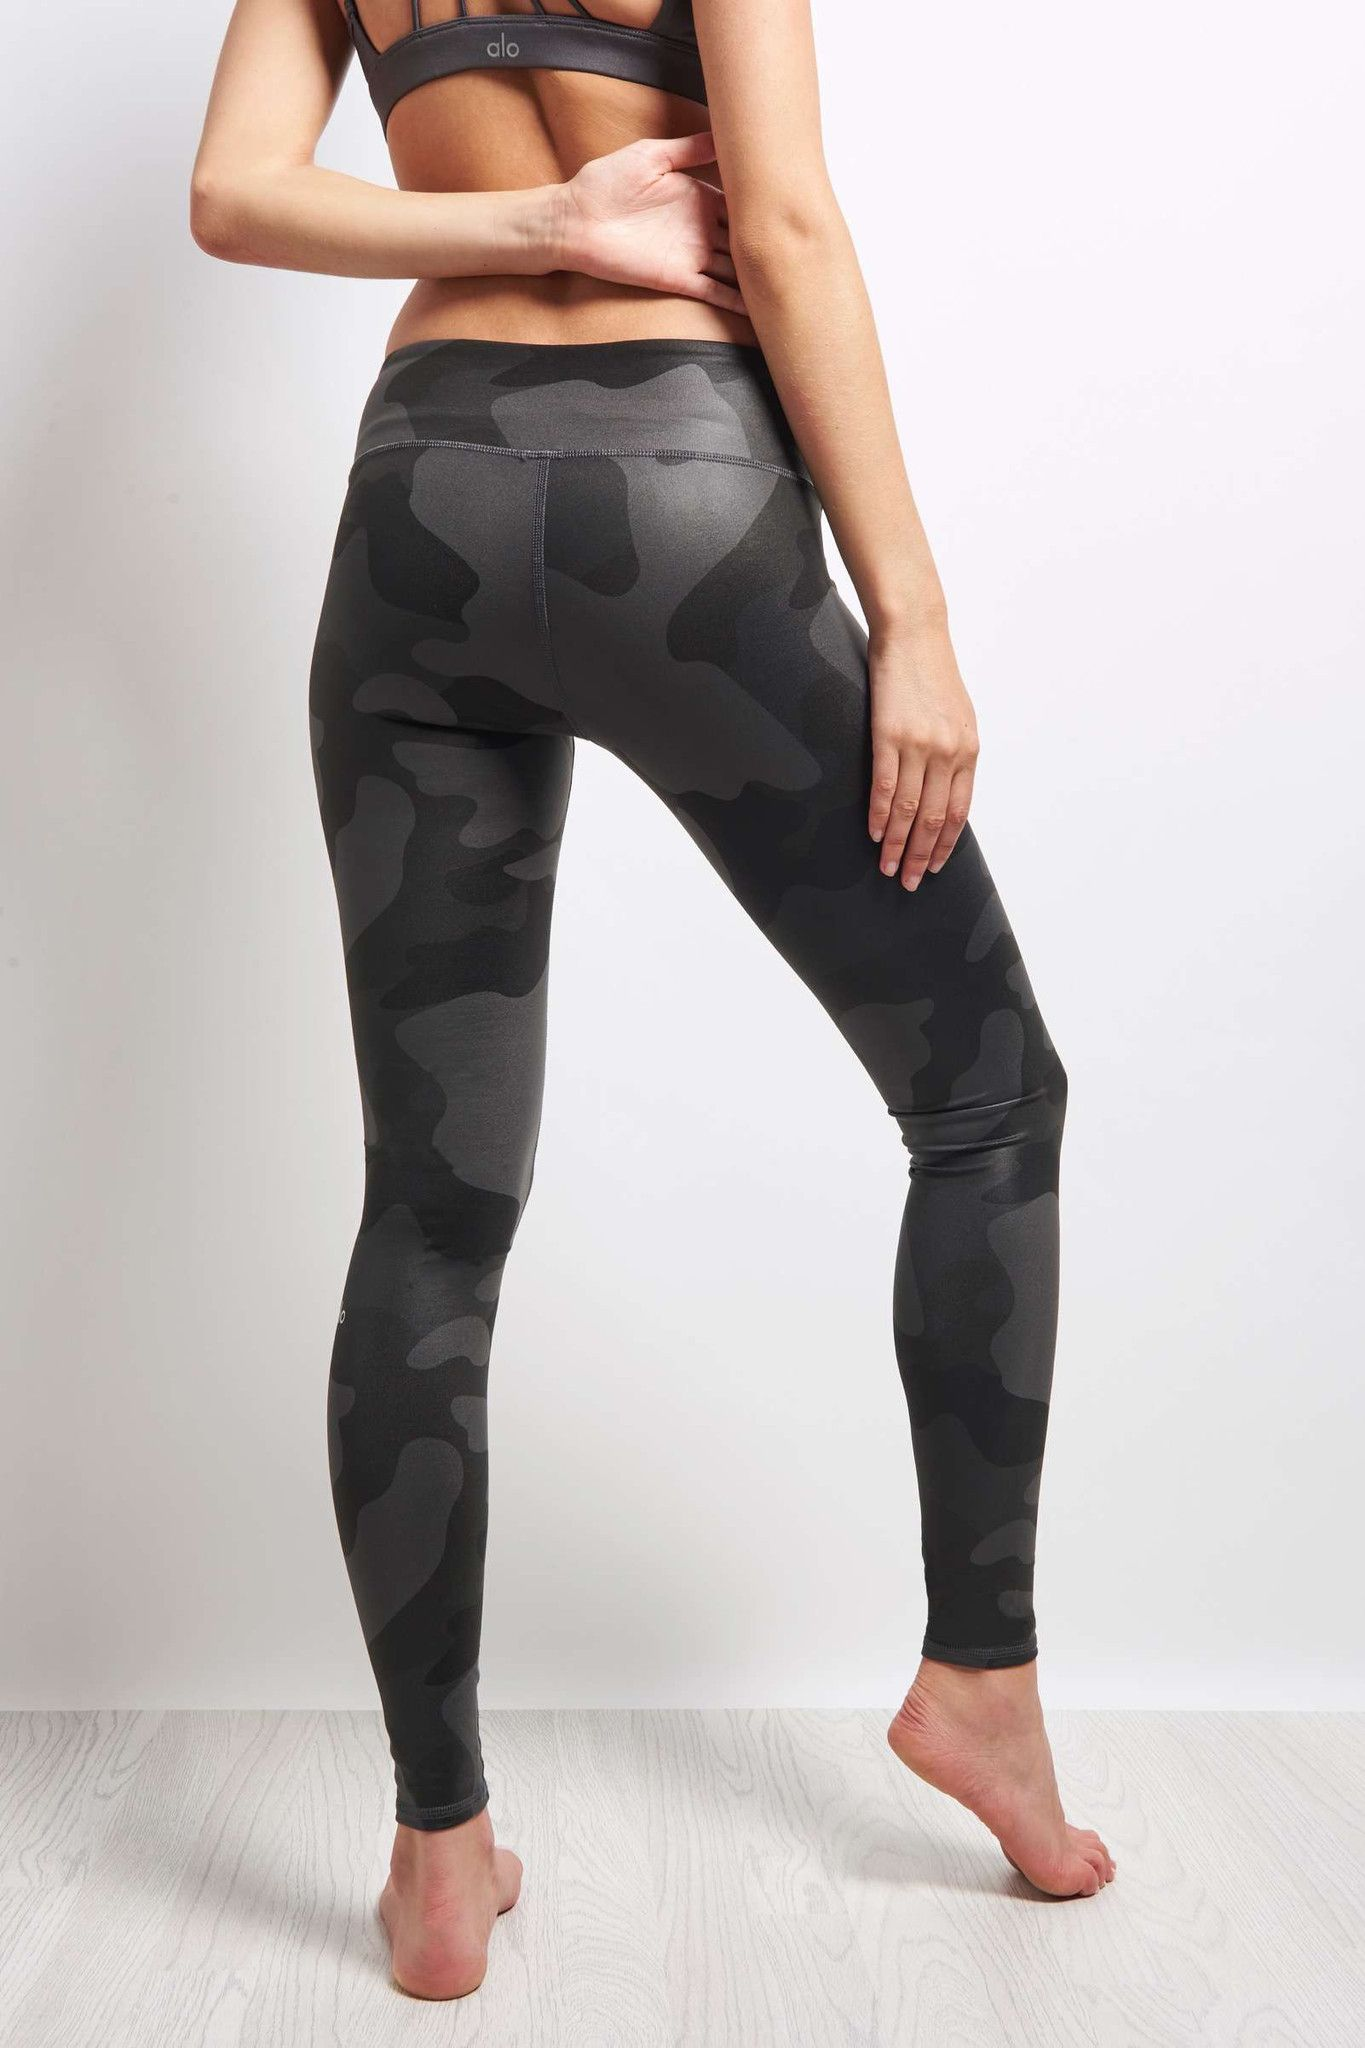 Alo Yoga Airbrush Legging - Black Camo image 3 - The Sports Edit